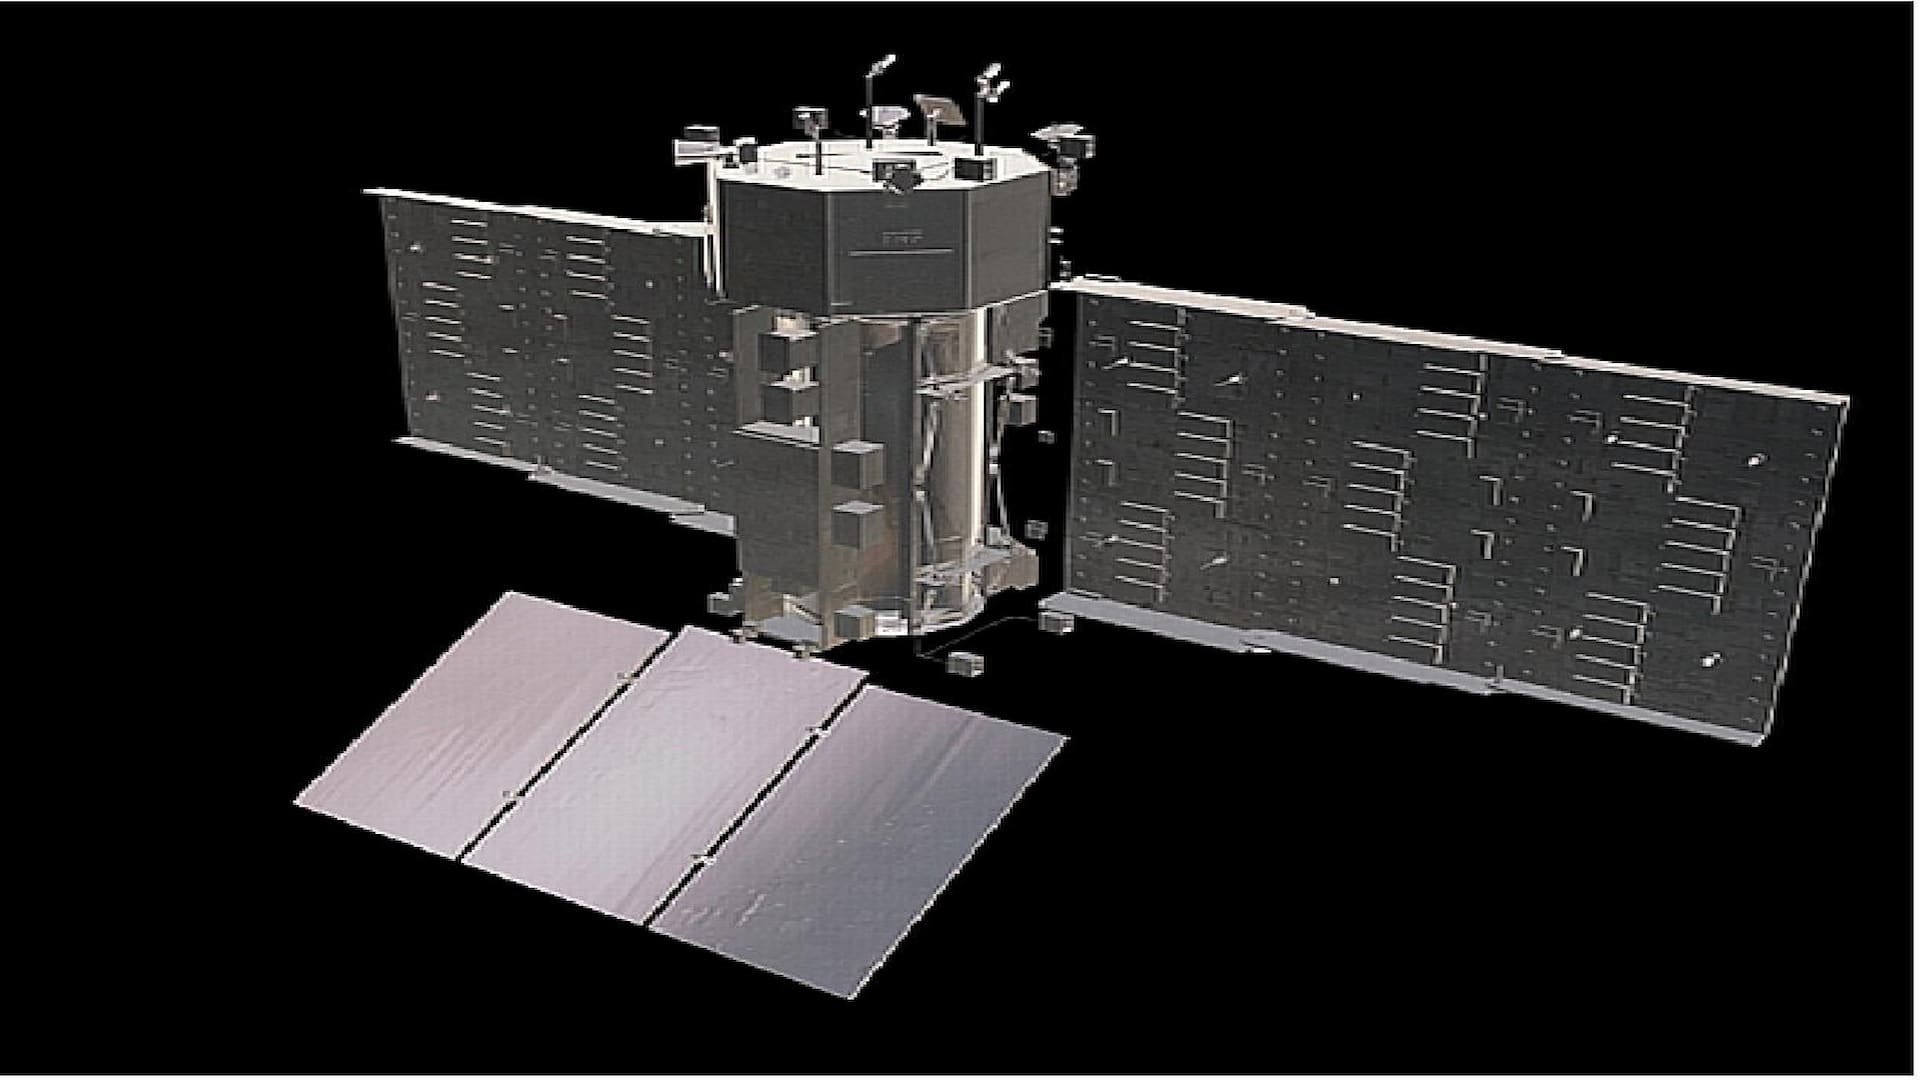 ASI - ASI starts the exploitation phase of data acquired in Europe by the L band SAR sensor of the Argentinean SAOCOM constellation